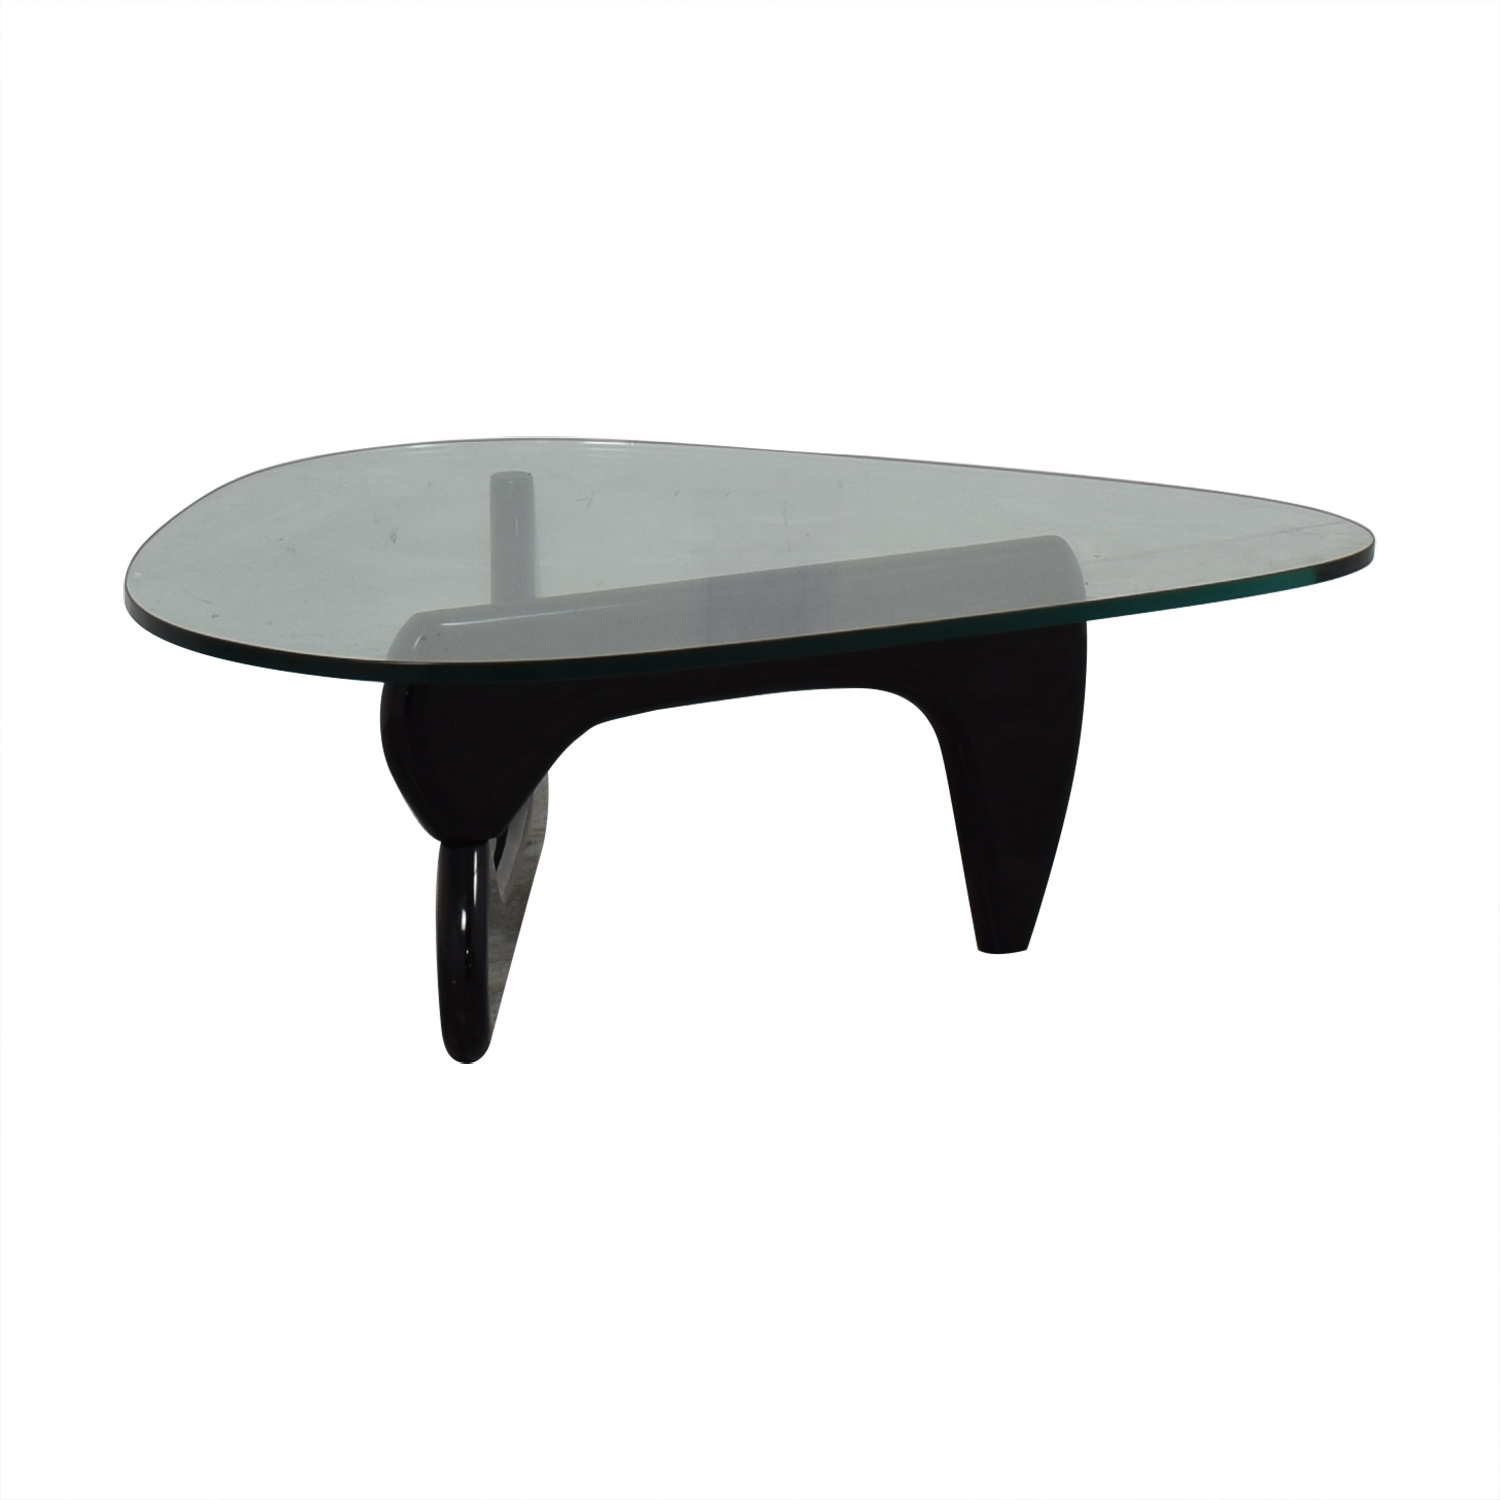 Maurice Villency Maurice Villency Noguchi Style Glass with Black Lacquer Coffee Table nyc